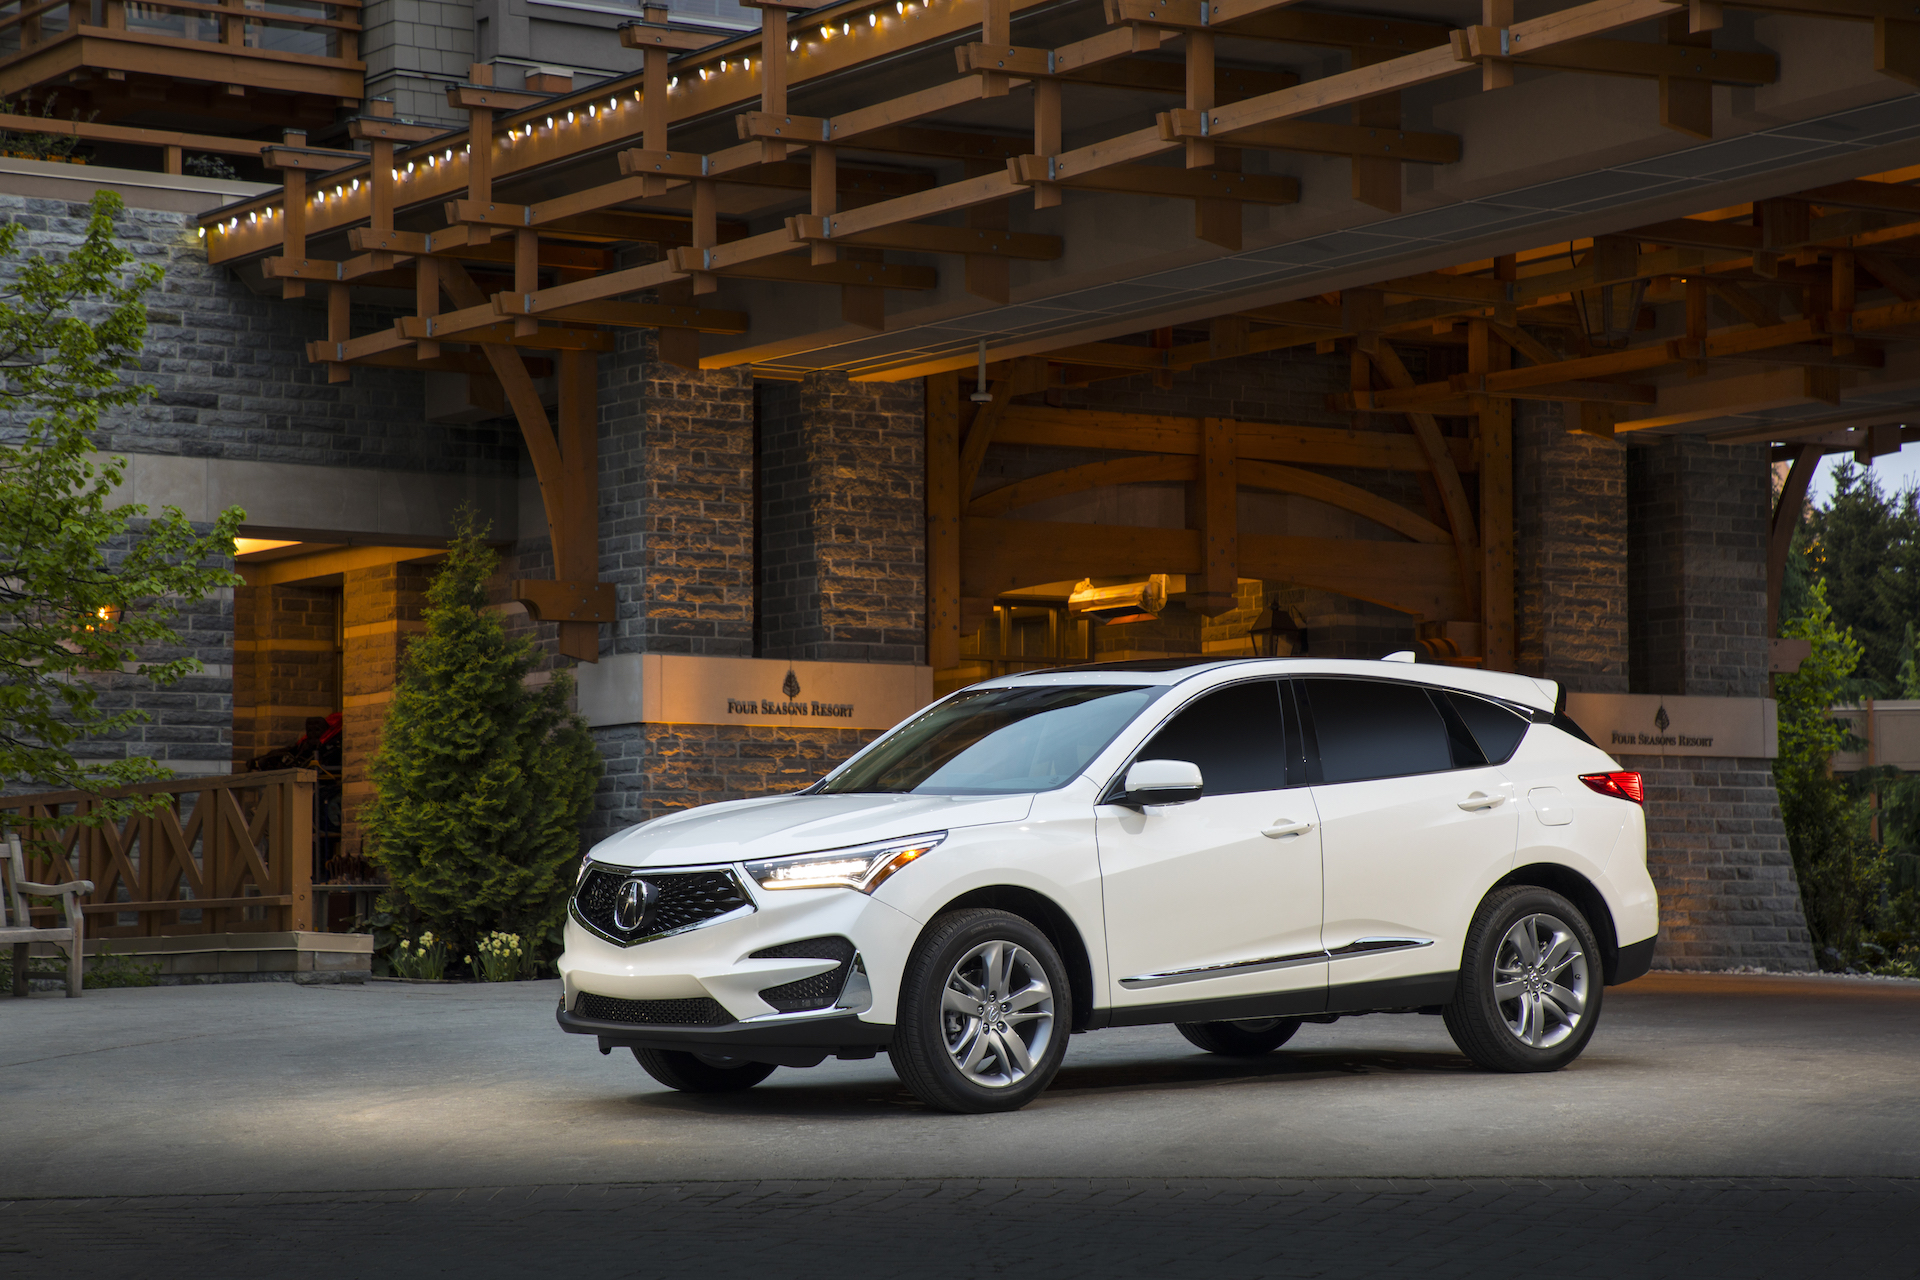 41 Great When Will 2020 Acura Rdx Be Released New Concept for When Will 2020 Acura Rdx Be Released